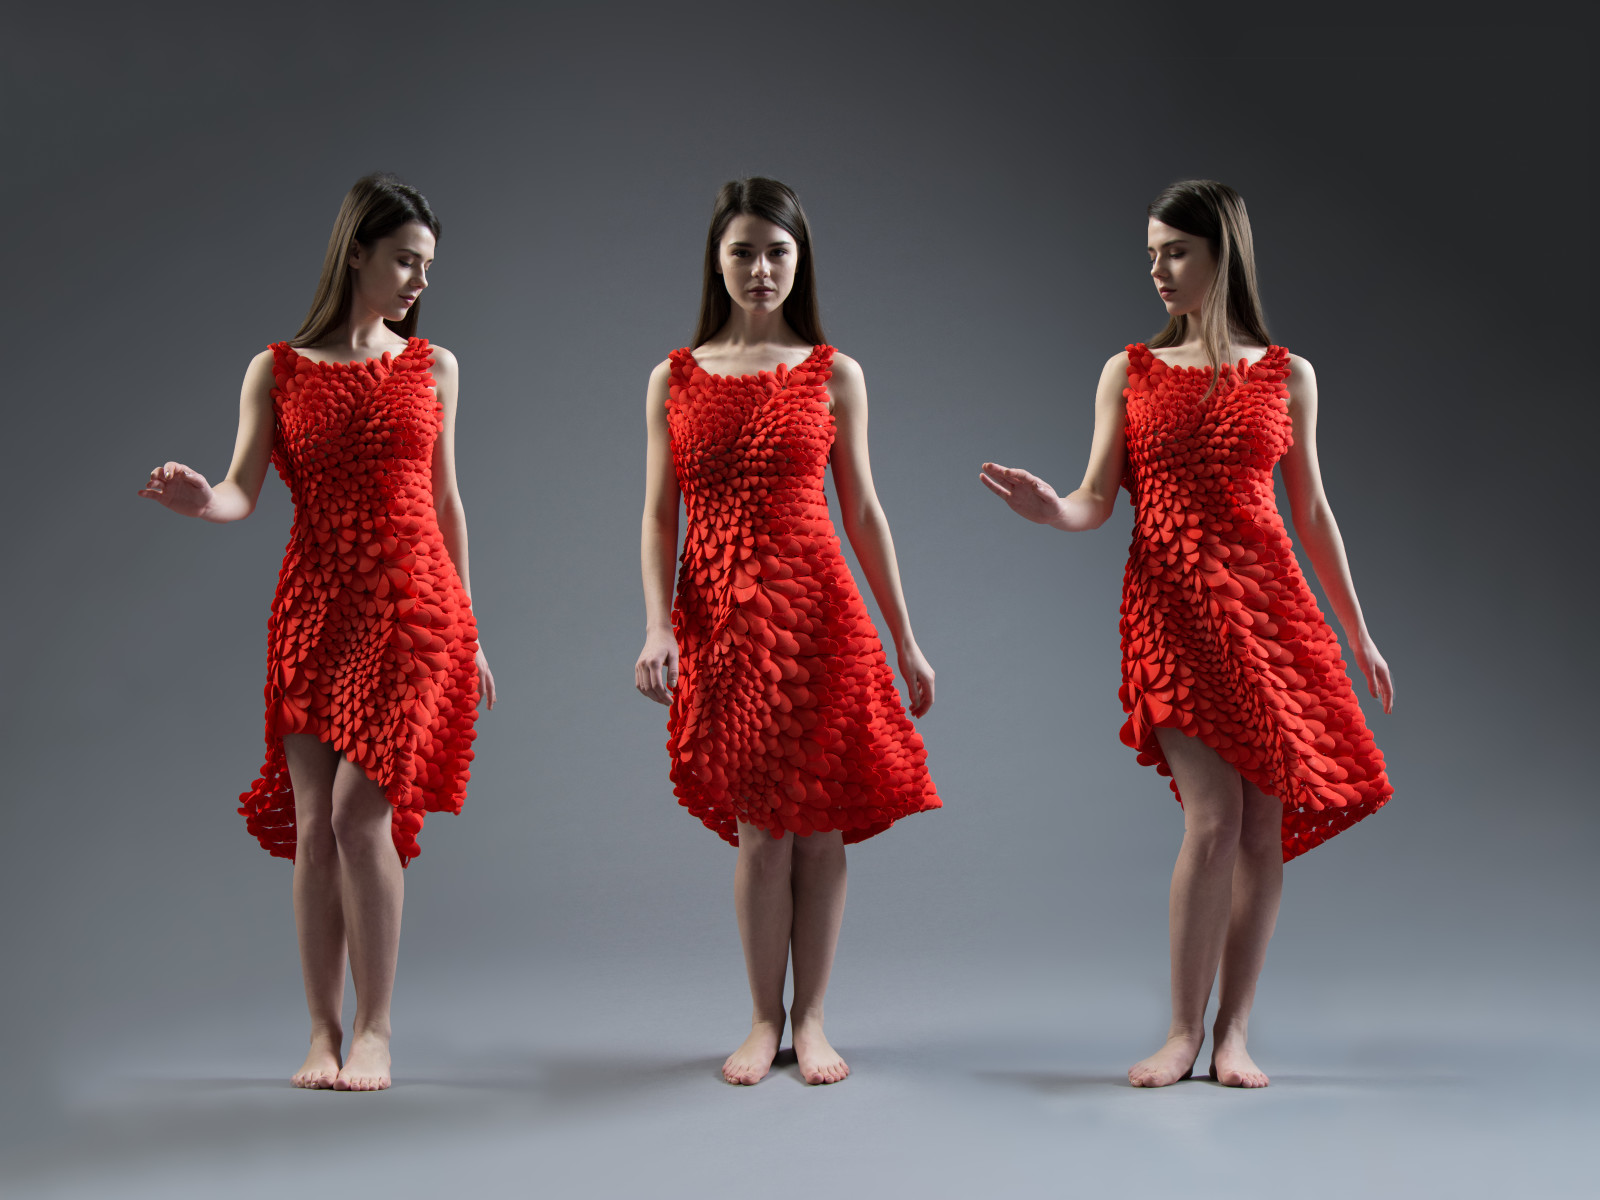 3_Kinematic Petals Dress_Nervous System_Inspirationis